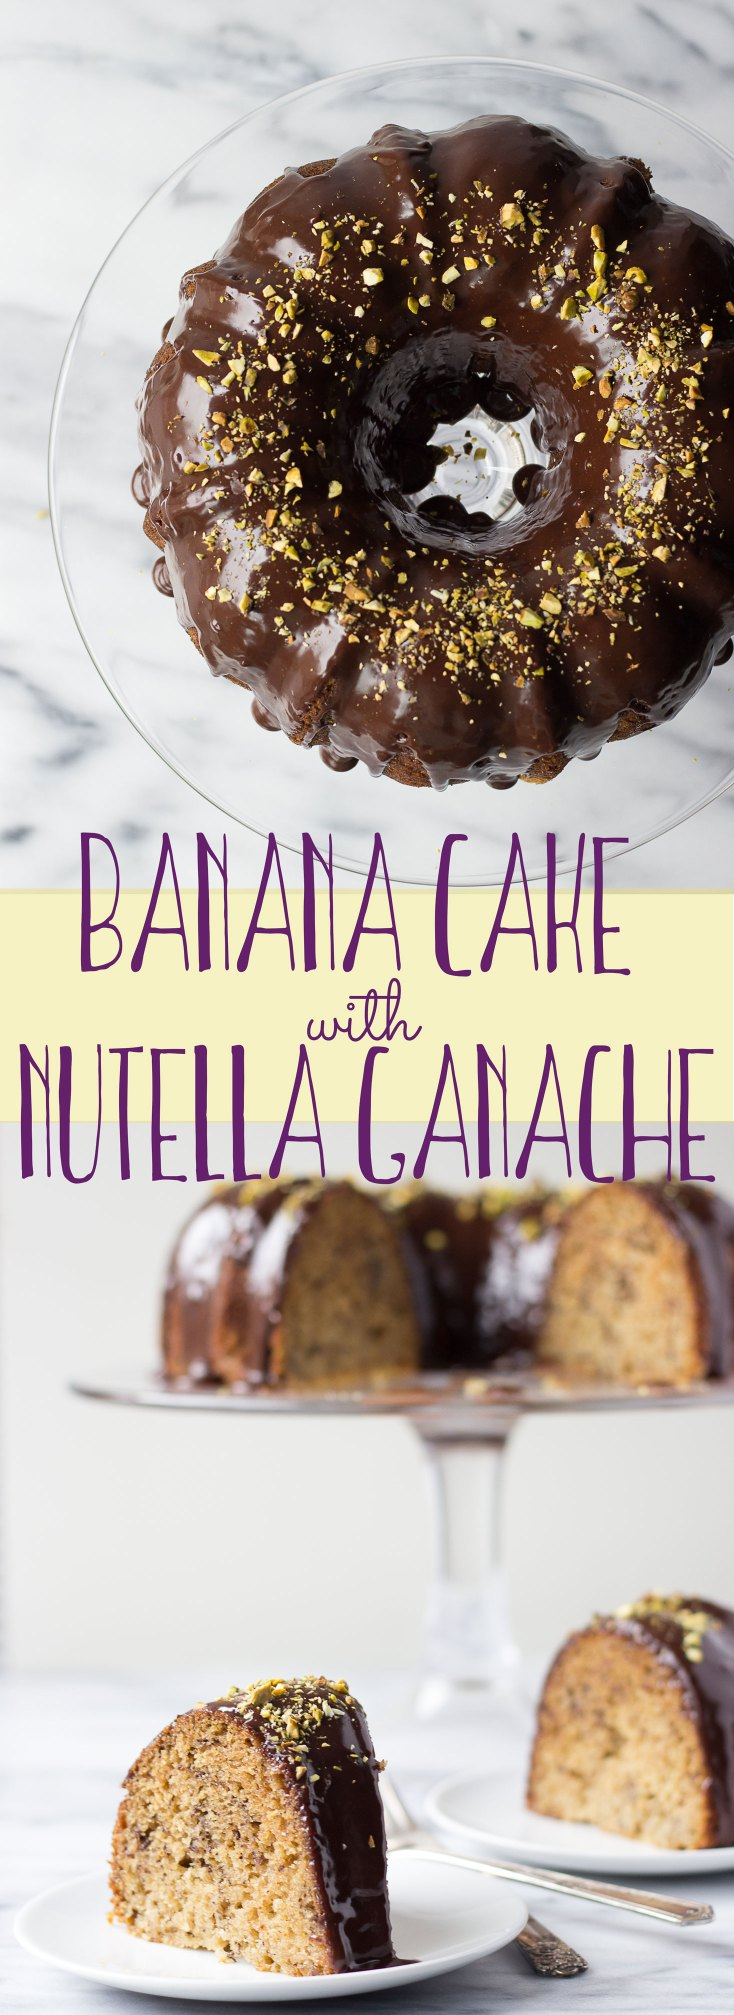 Banana Cake with Nutella Ganache - light, moist banana cake drizzled with a creamy Nutella ganache, it's the perfect dessert any time!